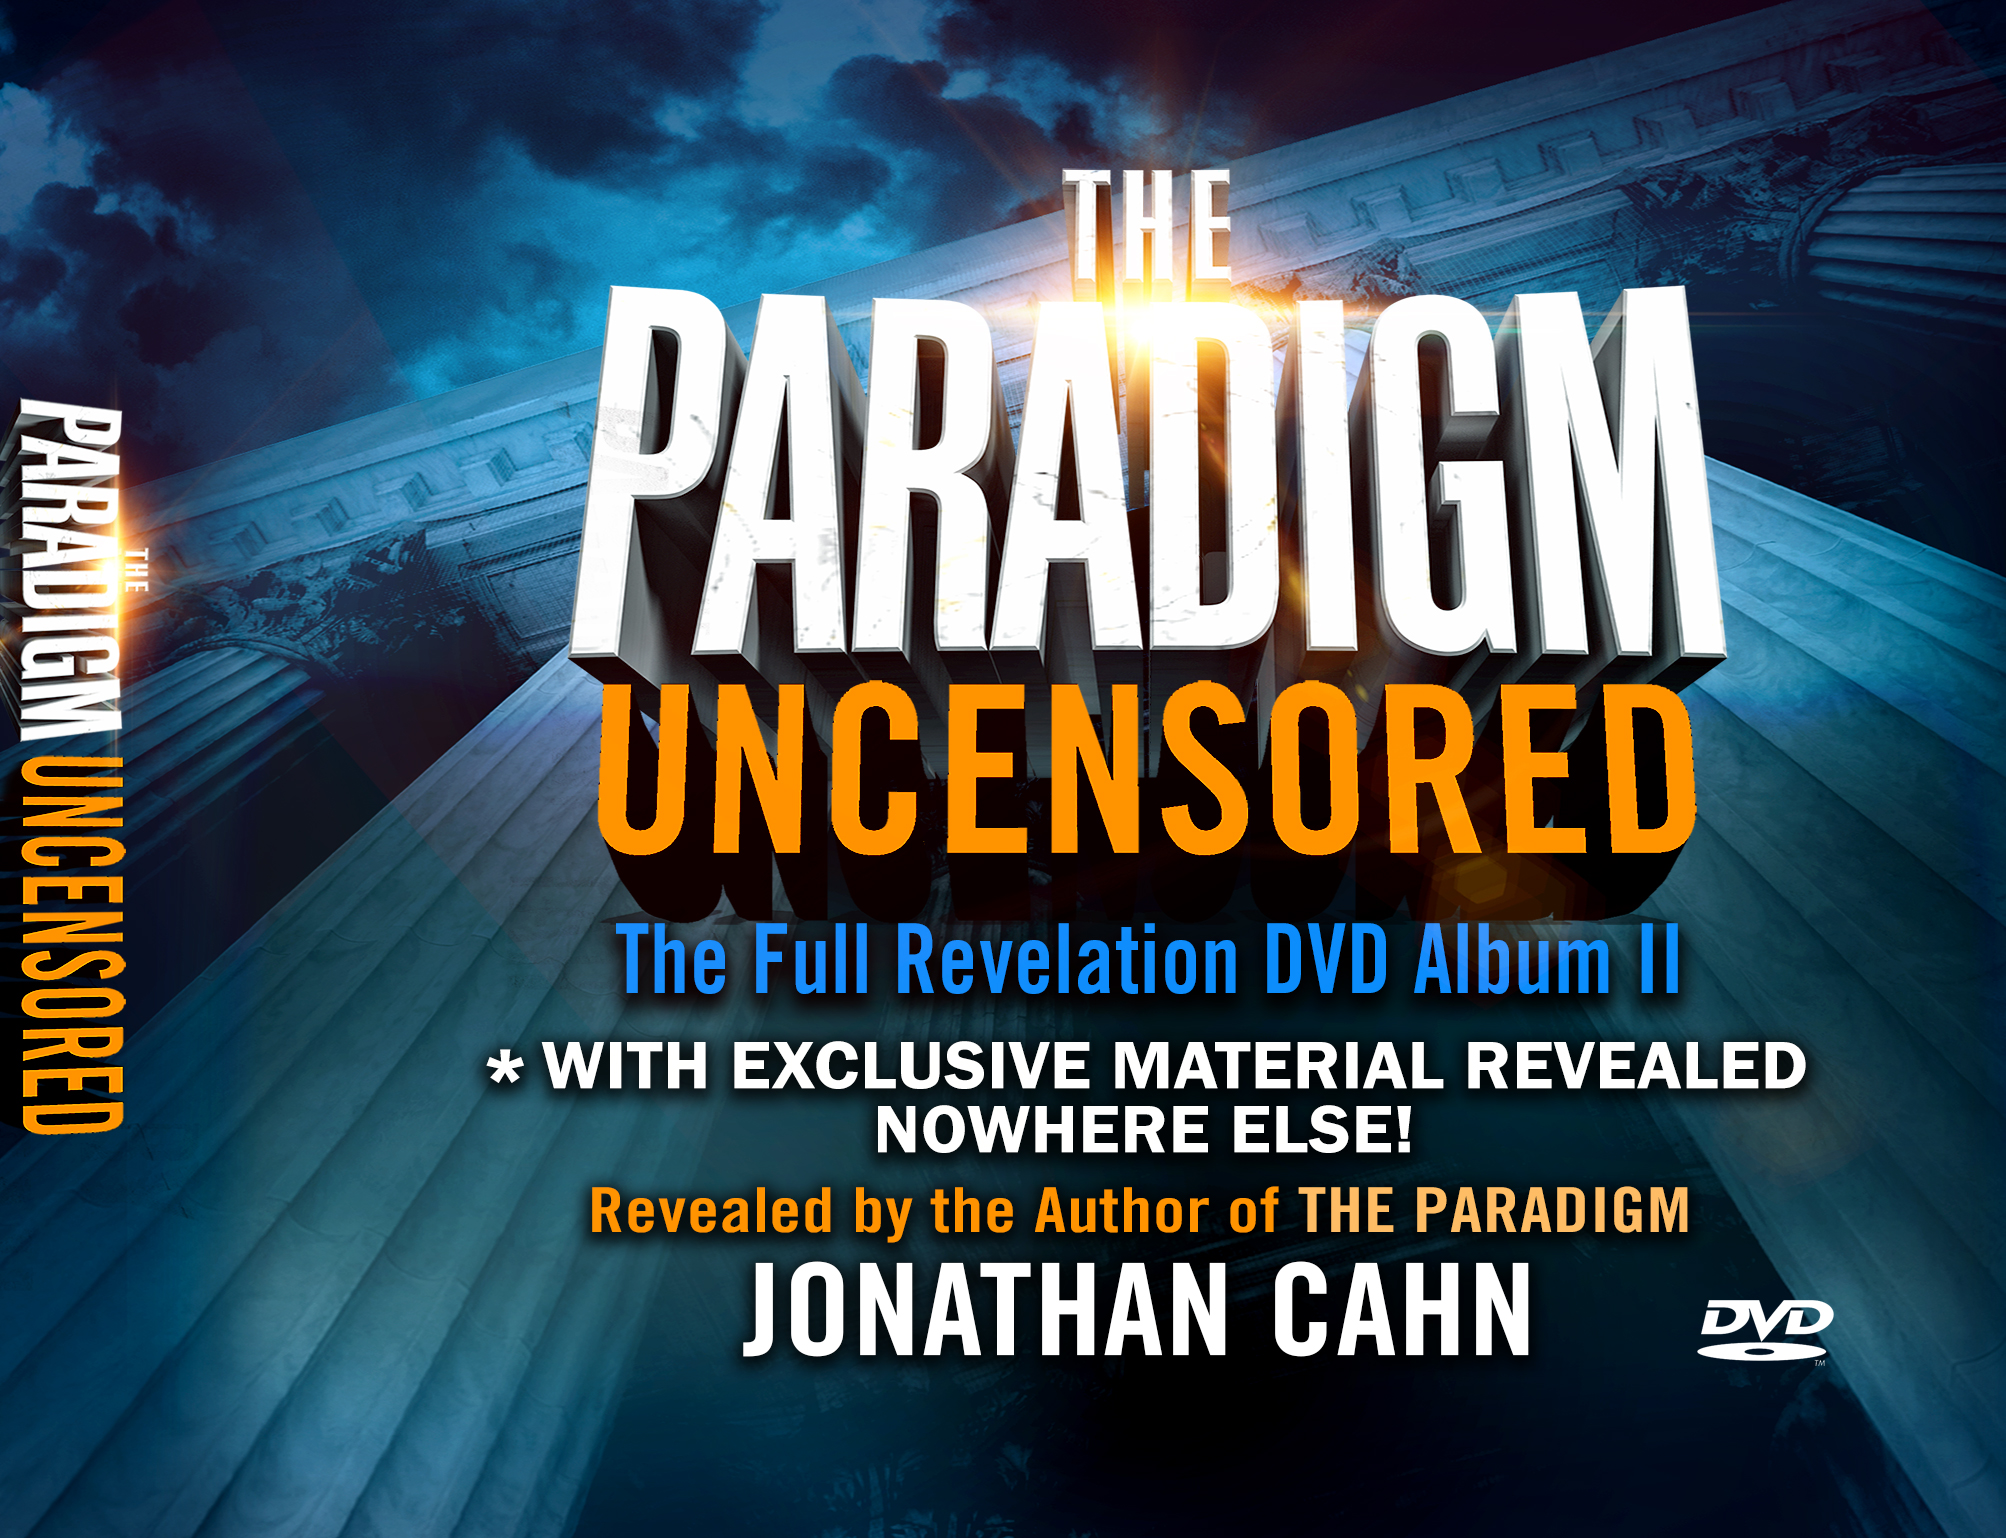 The paradigm package 2 new from jonathan cahn get the the malvernweather Gallery